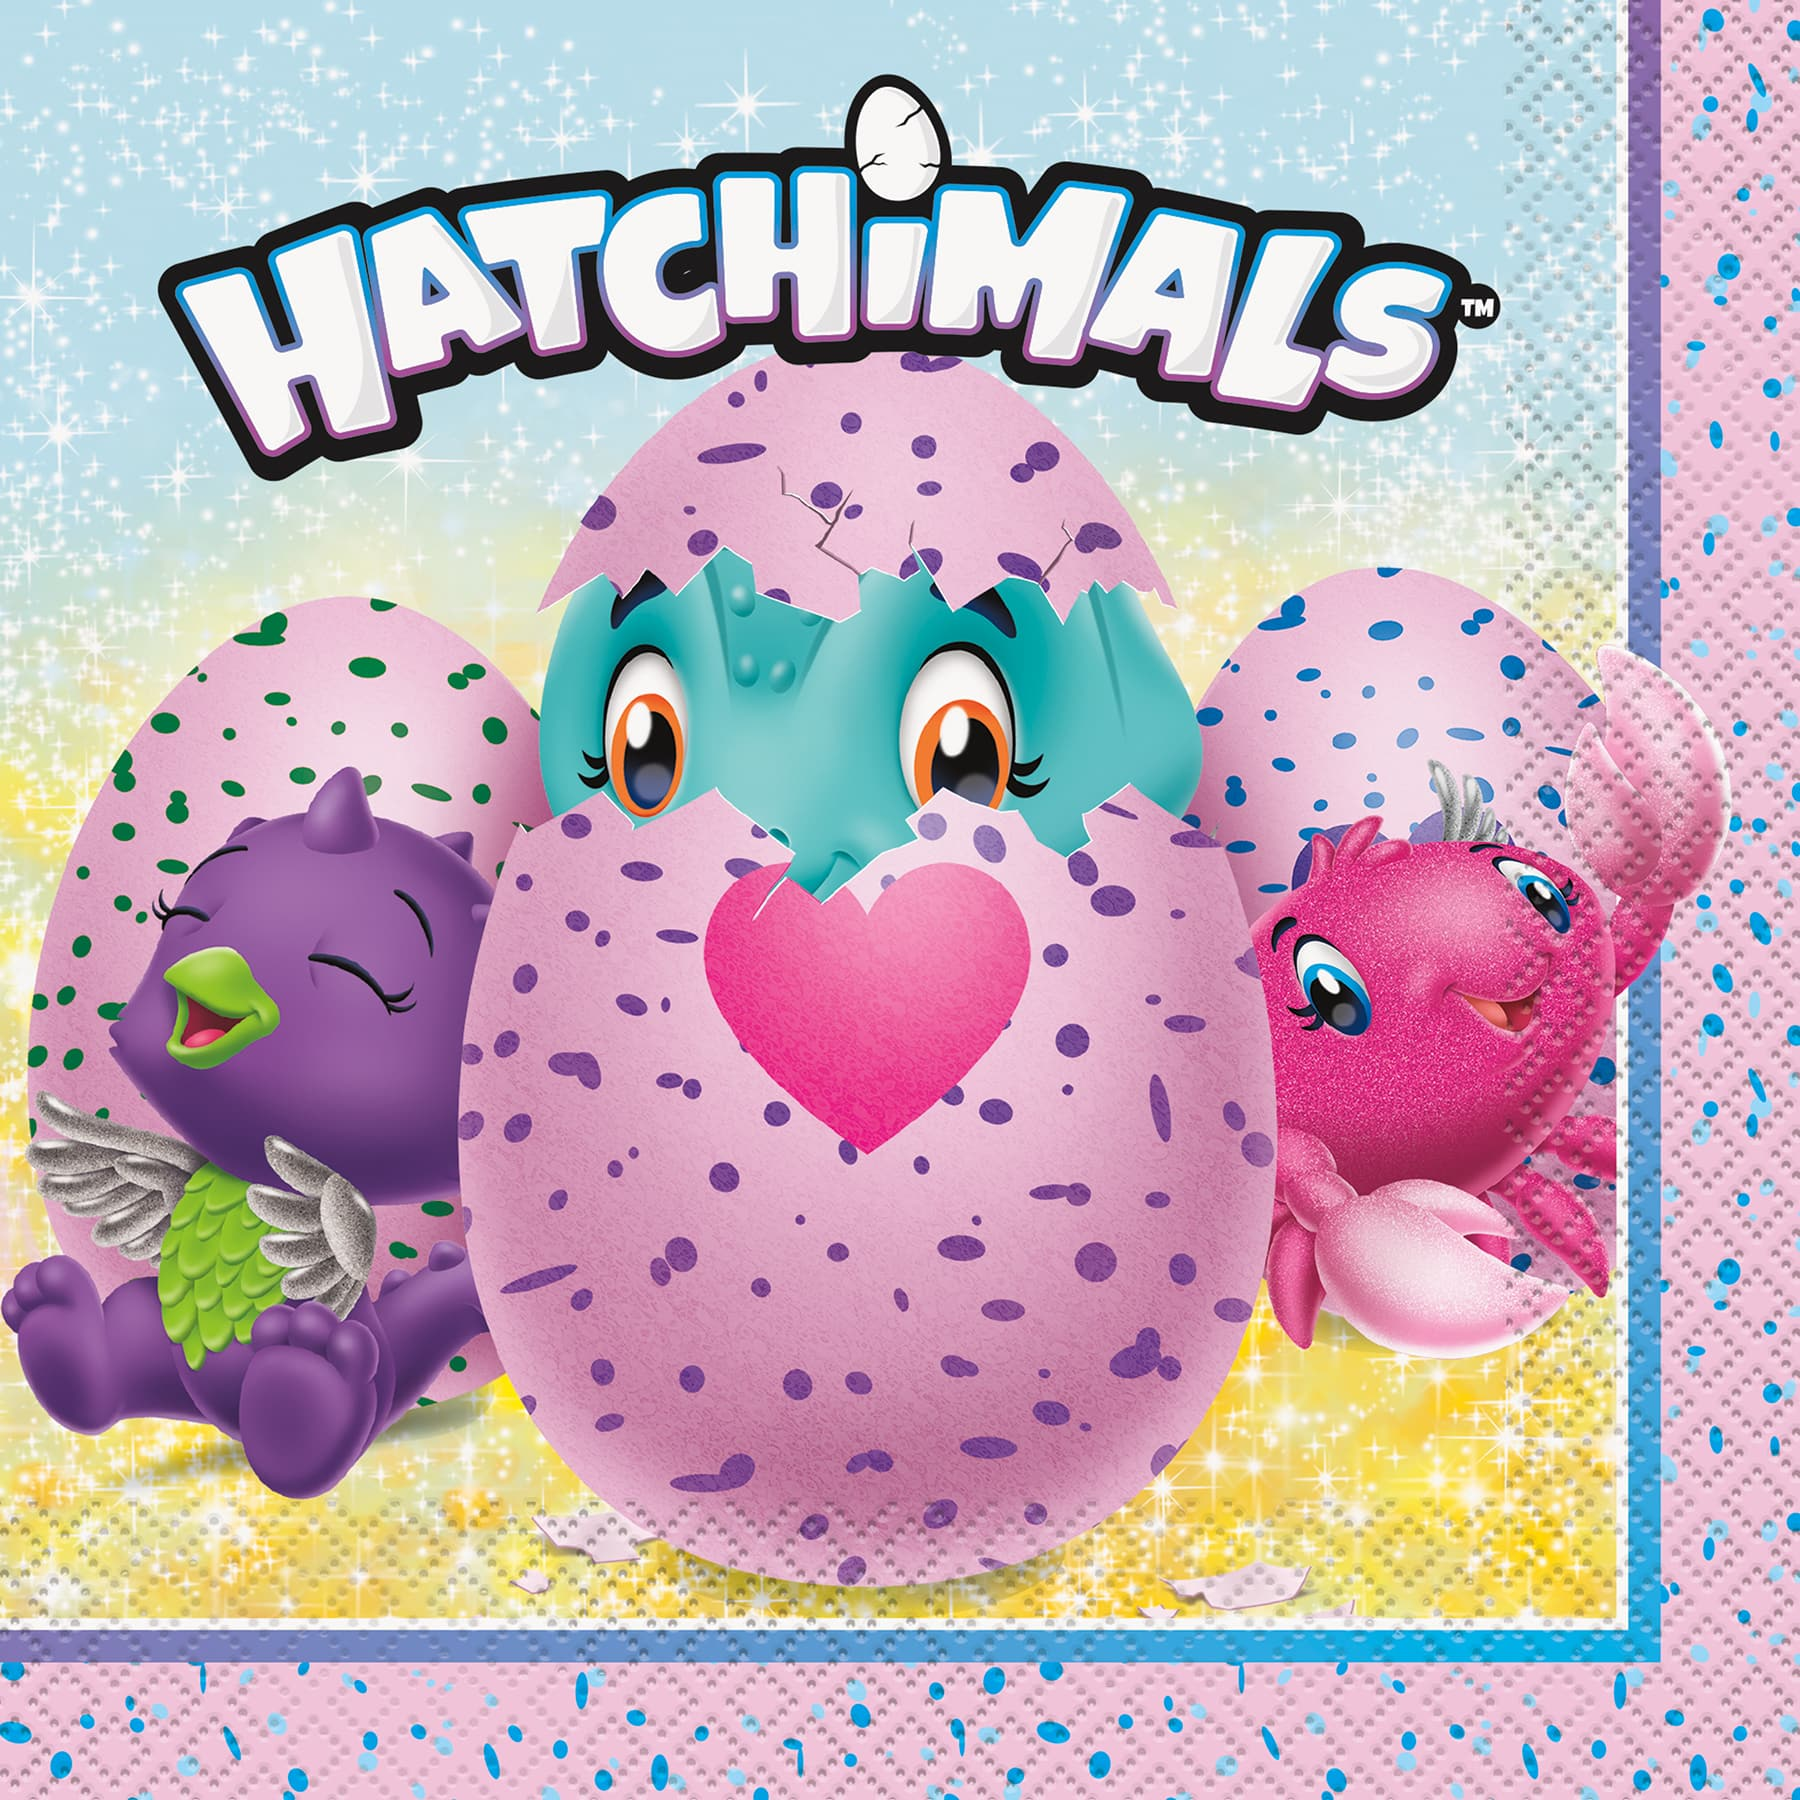 hatchimals luncheon napkins 16ct